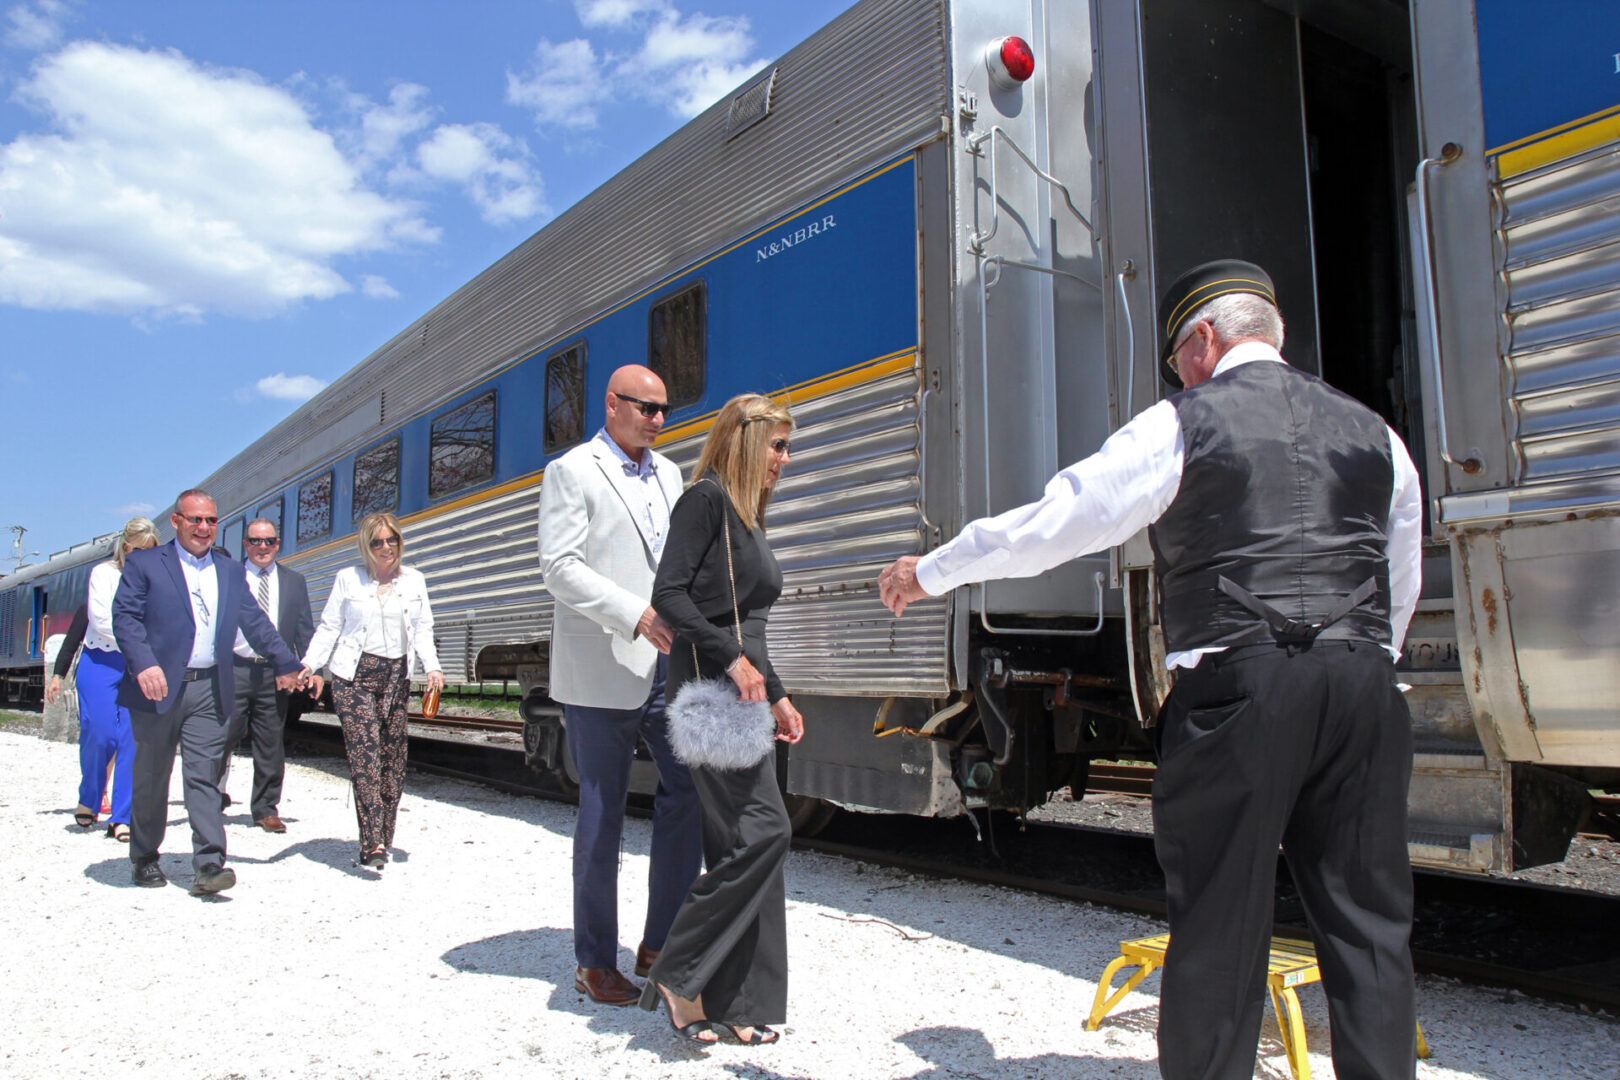 welcoming guests aboard the Grand Bellevue train